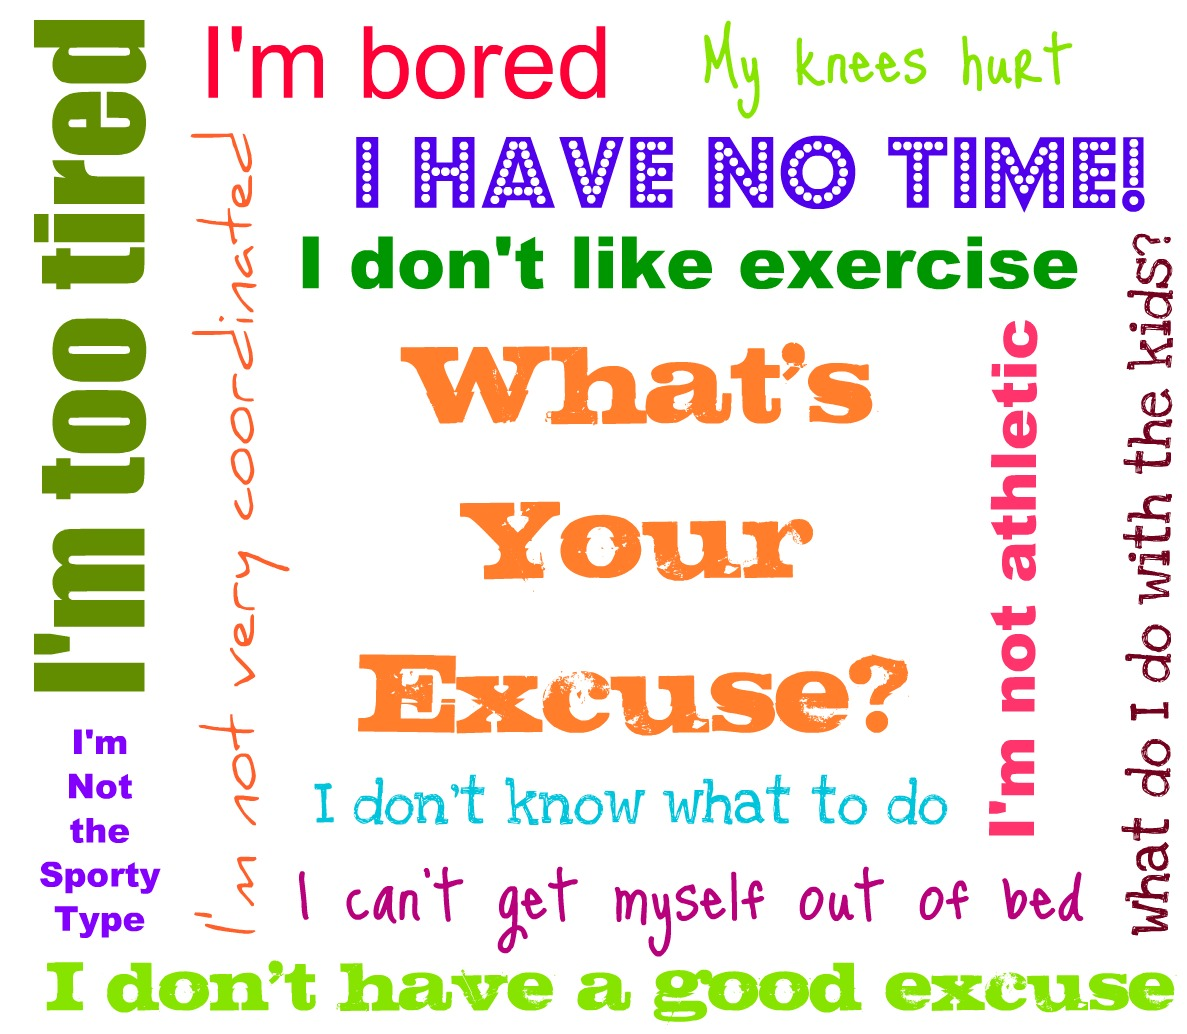 Overcoming excuses to exercise